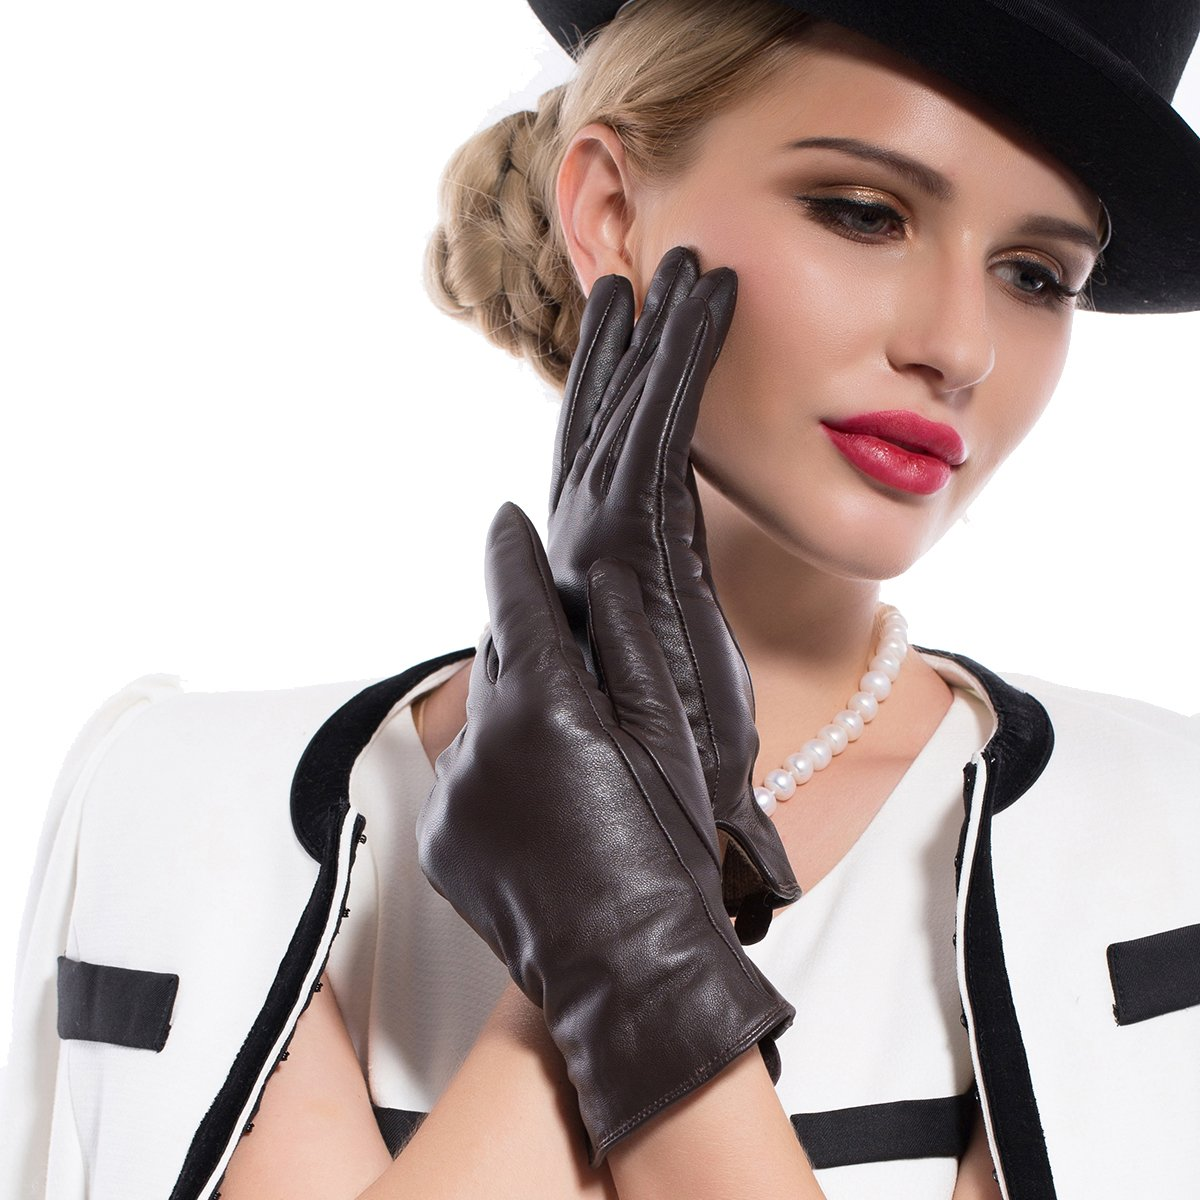 Kursheuel 14 colors Cashmere Women Lady's Genuine lambskin soft leather driving Gloves KU141 (XL, Brown(2014 winter new /Cashmere lining / Touchscreen available))